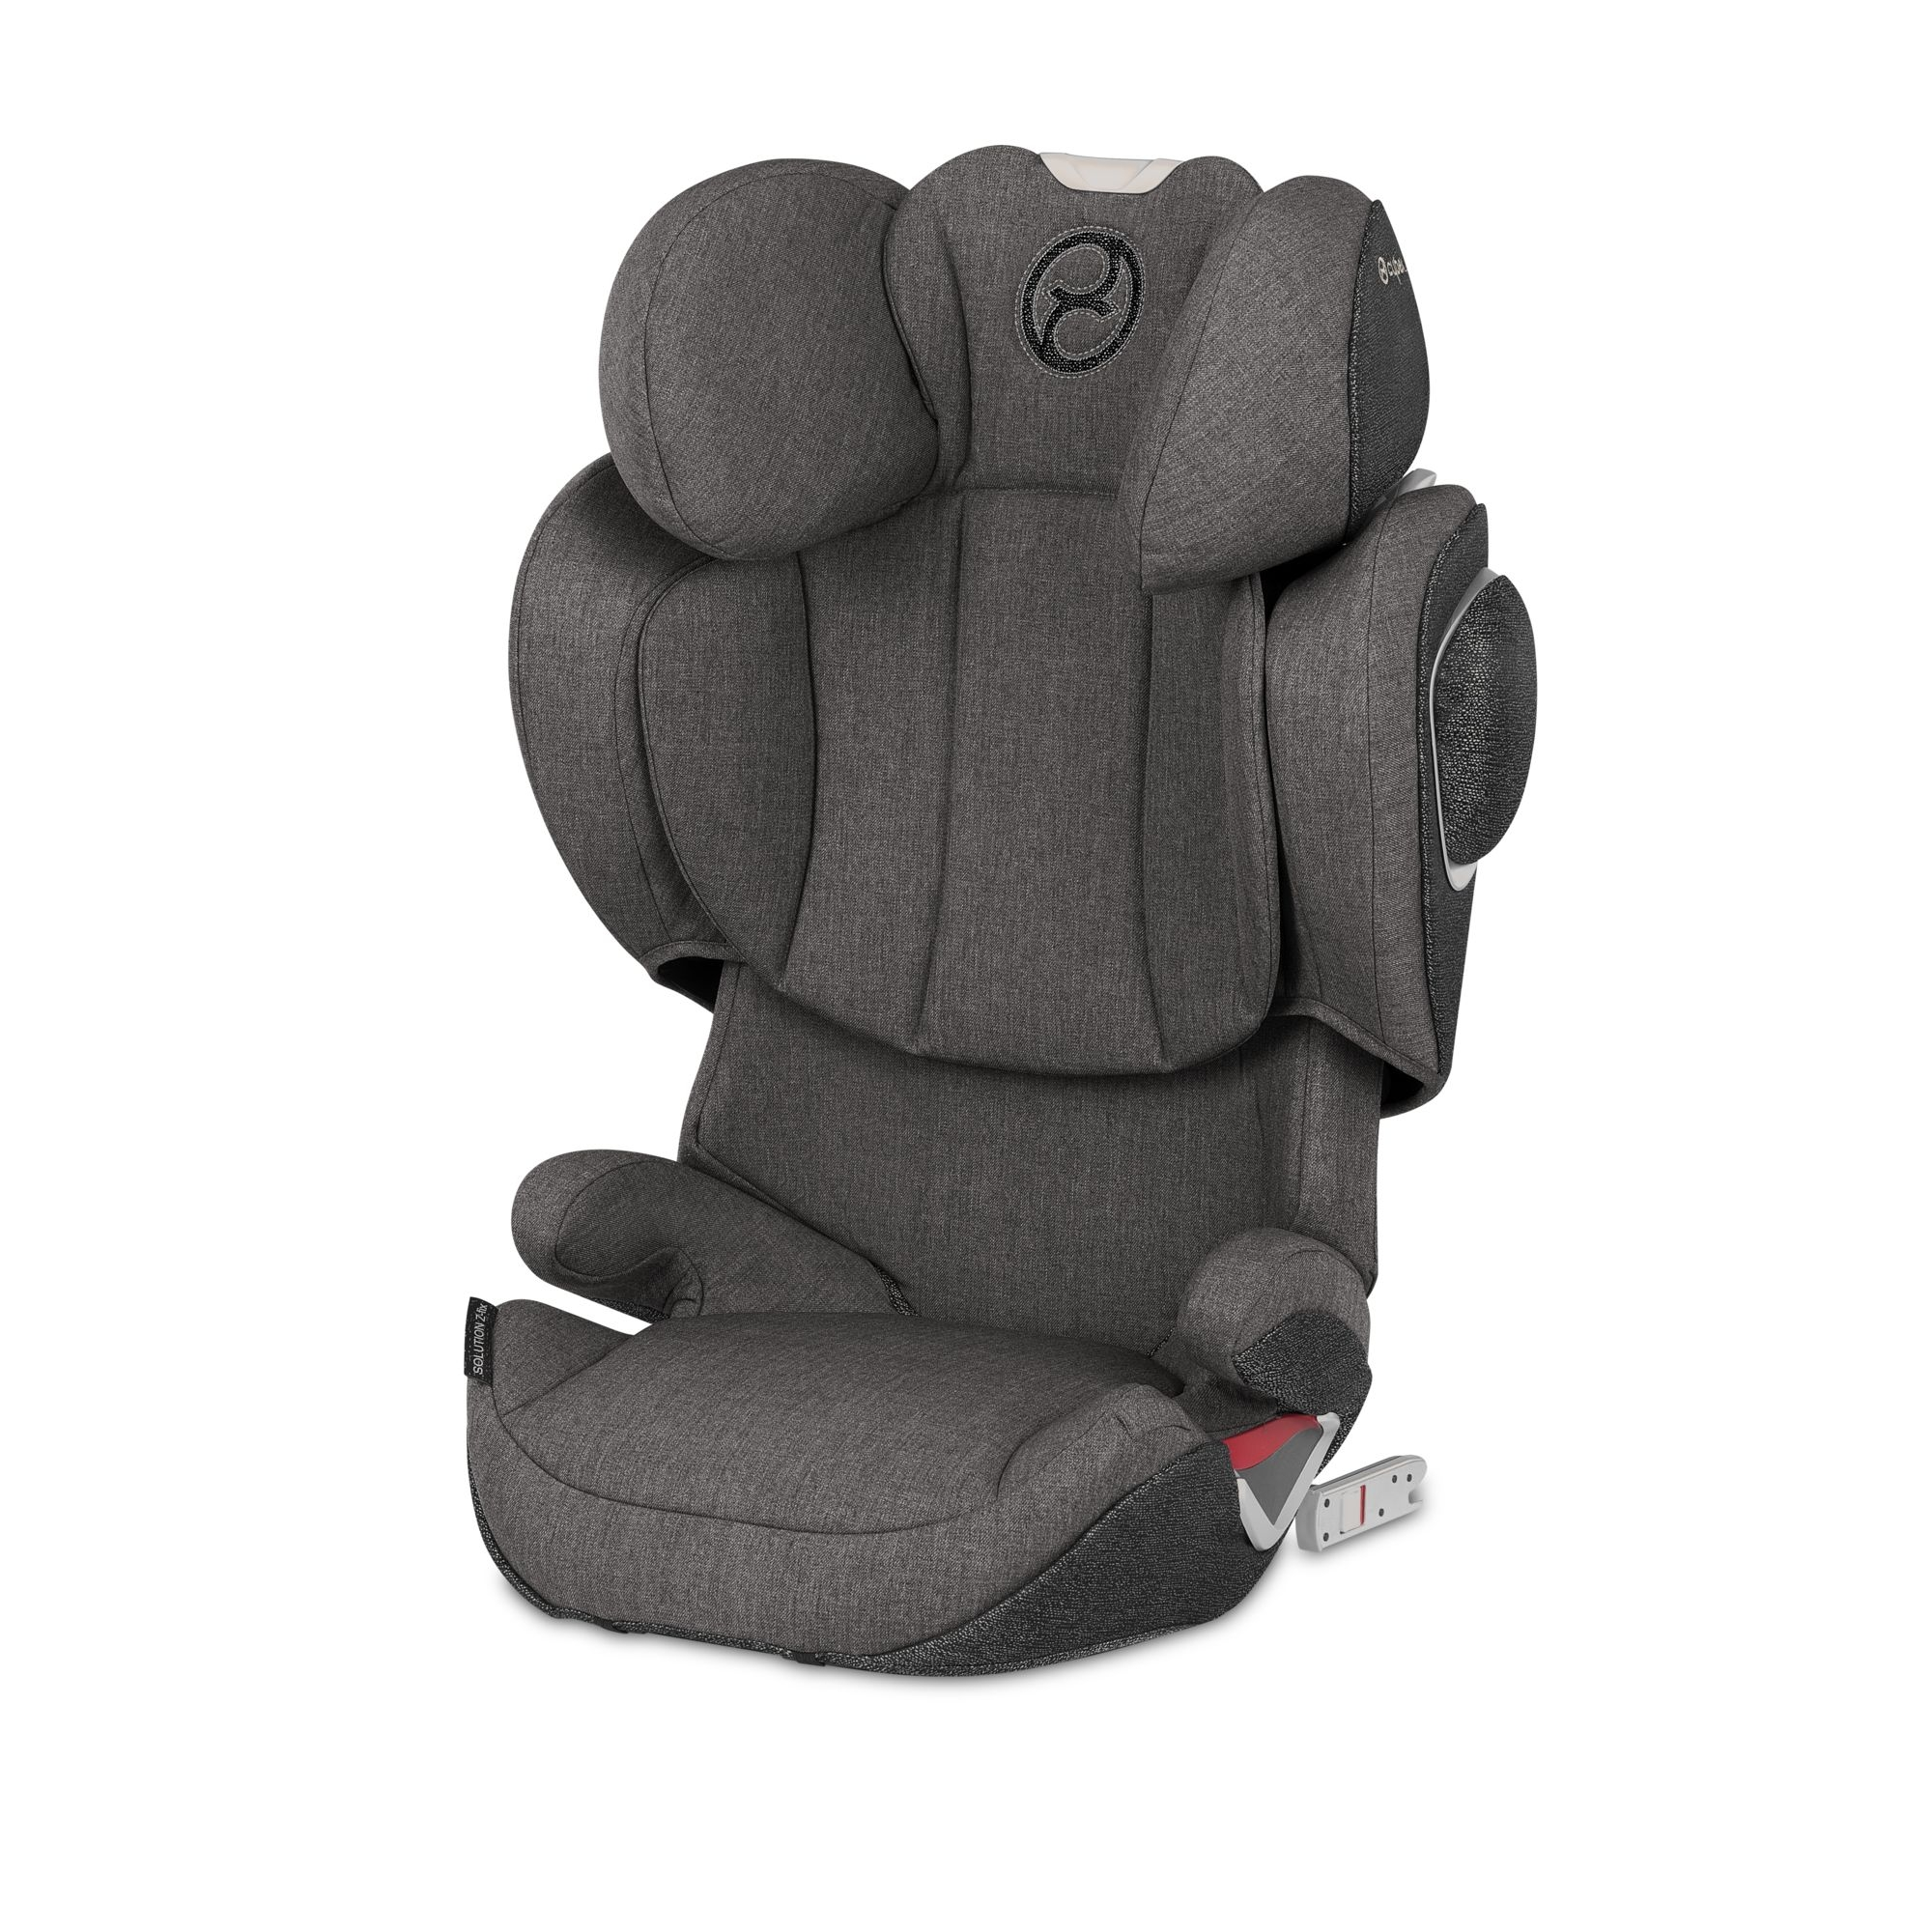 Автокресло Cybex Solution Z-fix Manhattan Grey, серый